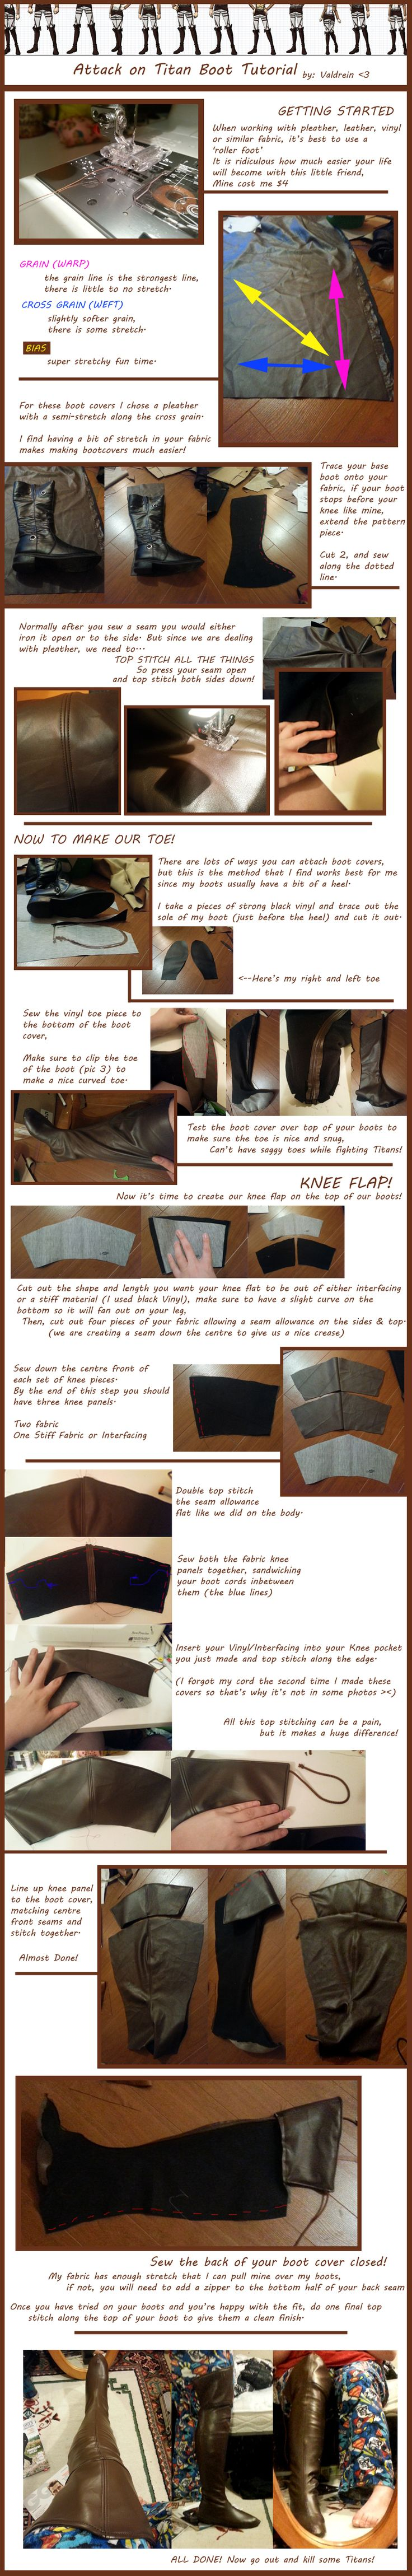 Attack on Titan bootcover tutorial! Exactly what I needed, and it wont ruin the boots being covered.